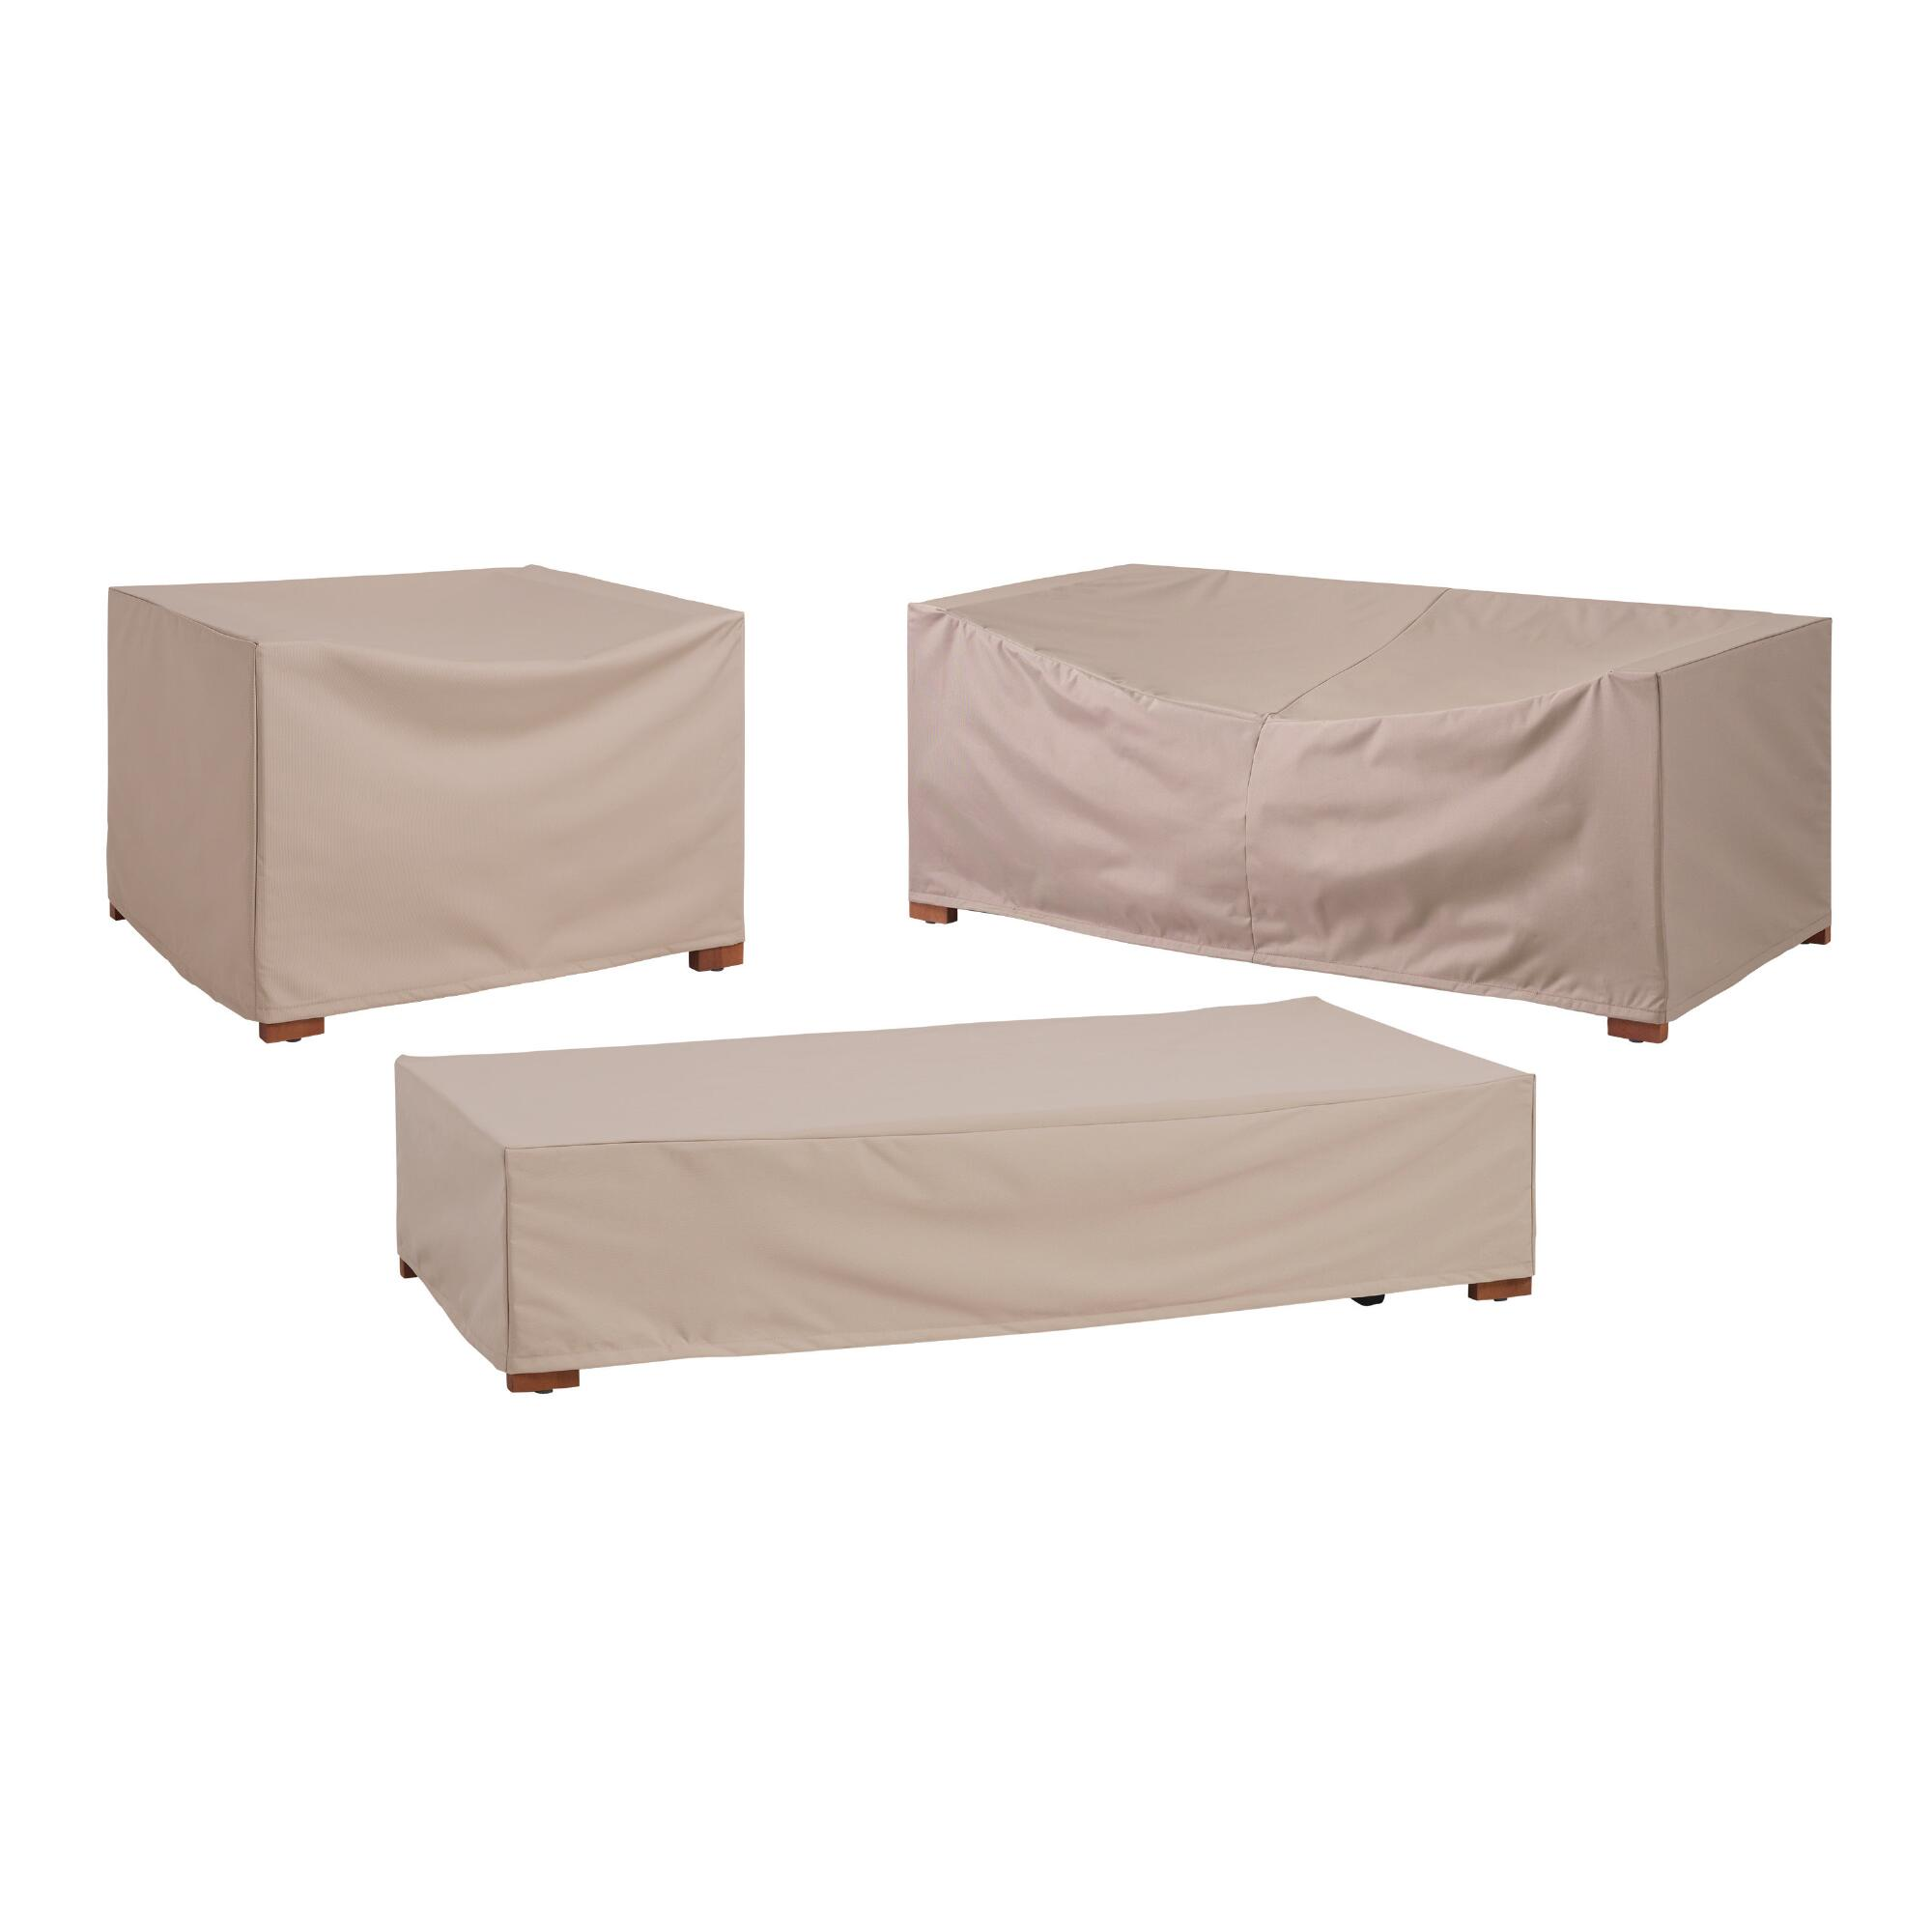 World Market Outdoor Furniture Covers, World Market Outdoor Furniture Covers